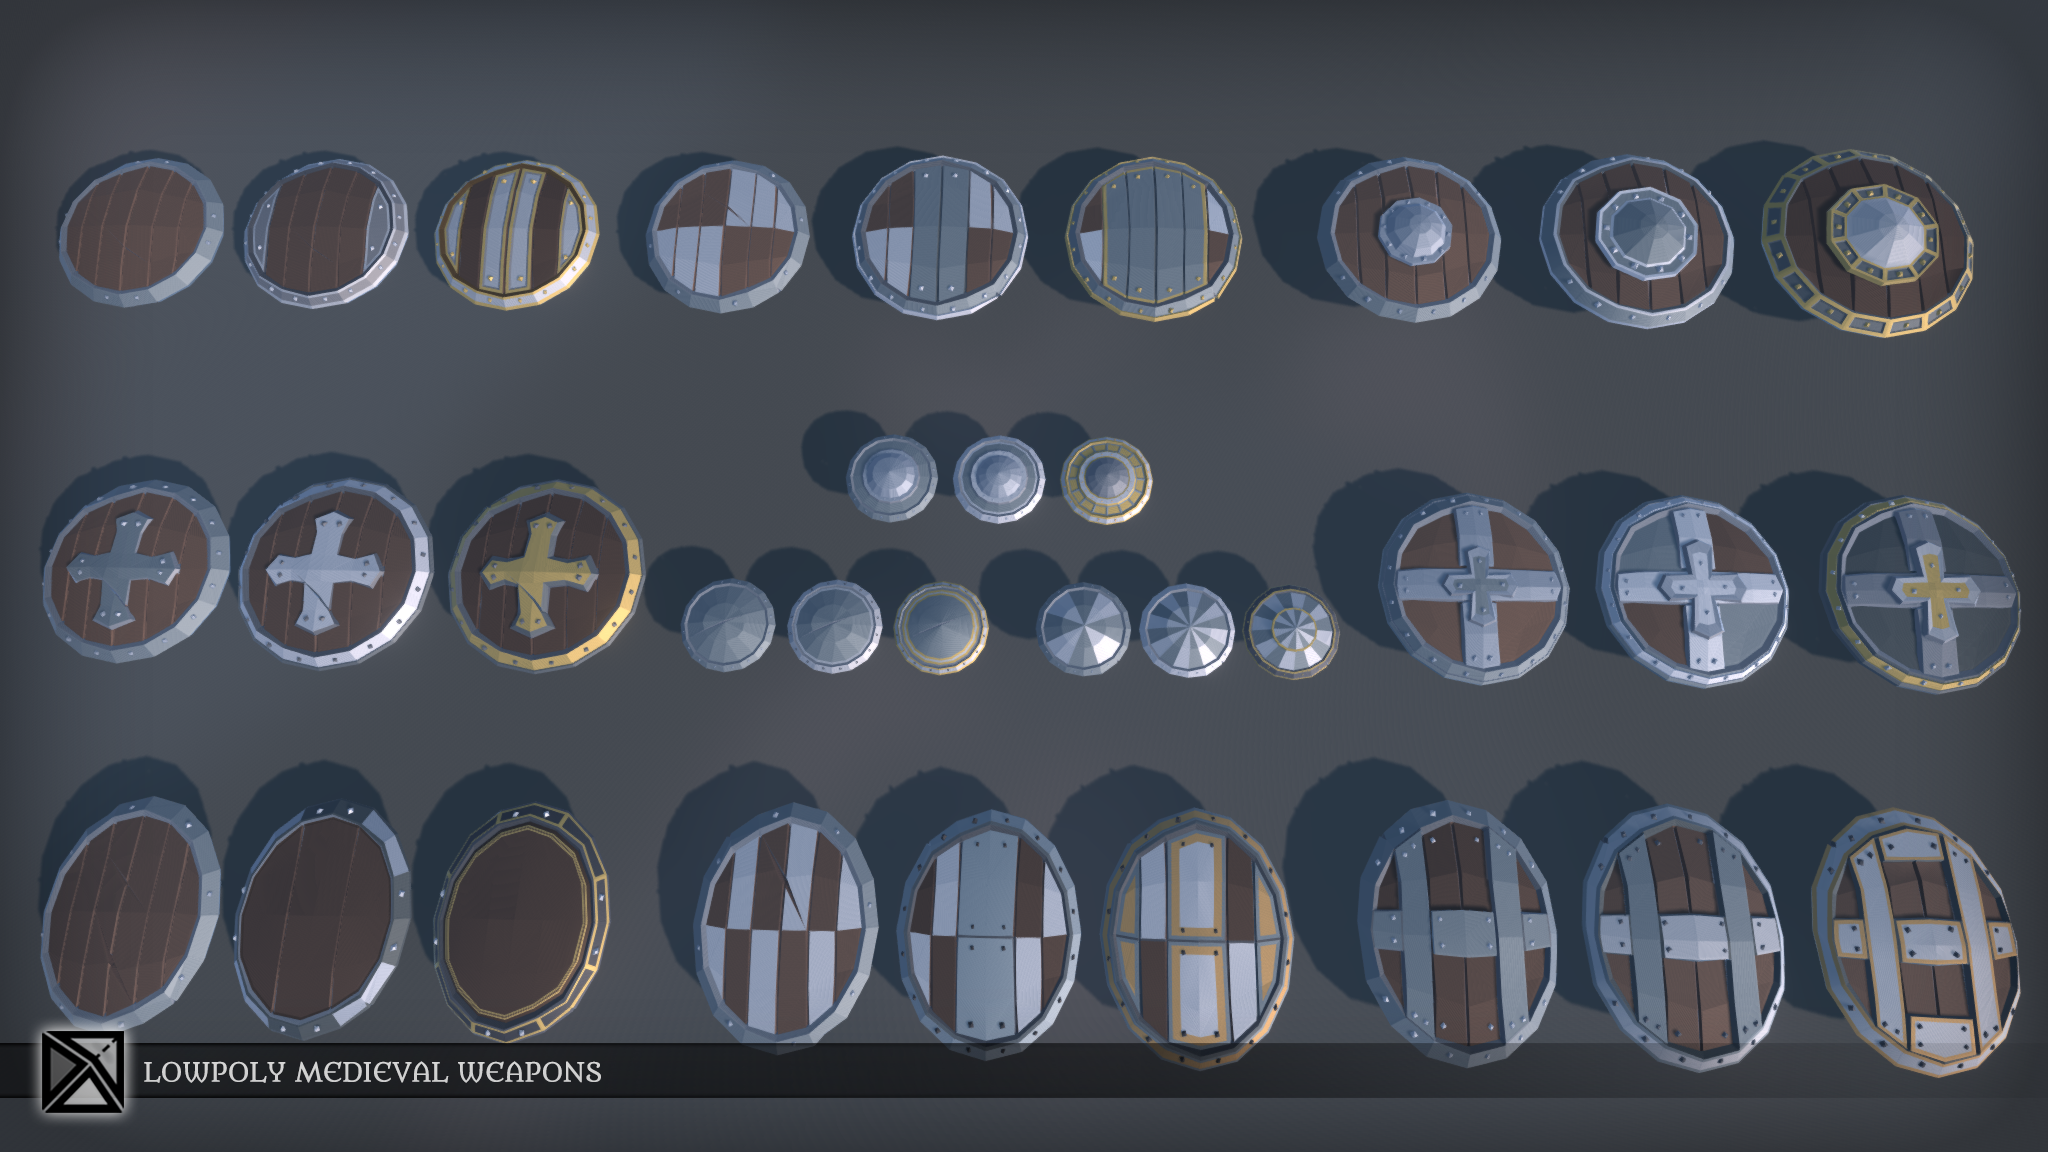 PT_Medieval_Lowpoly_Weapons_Shield.png